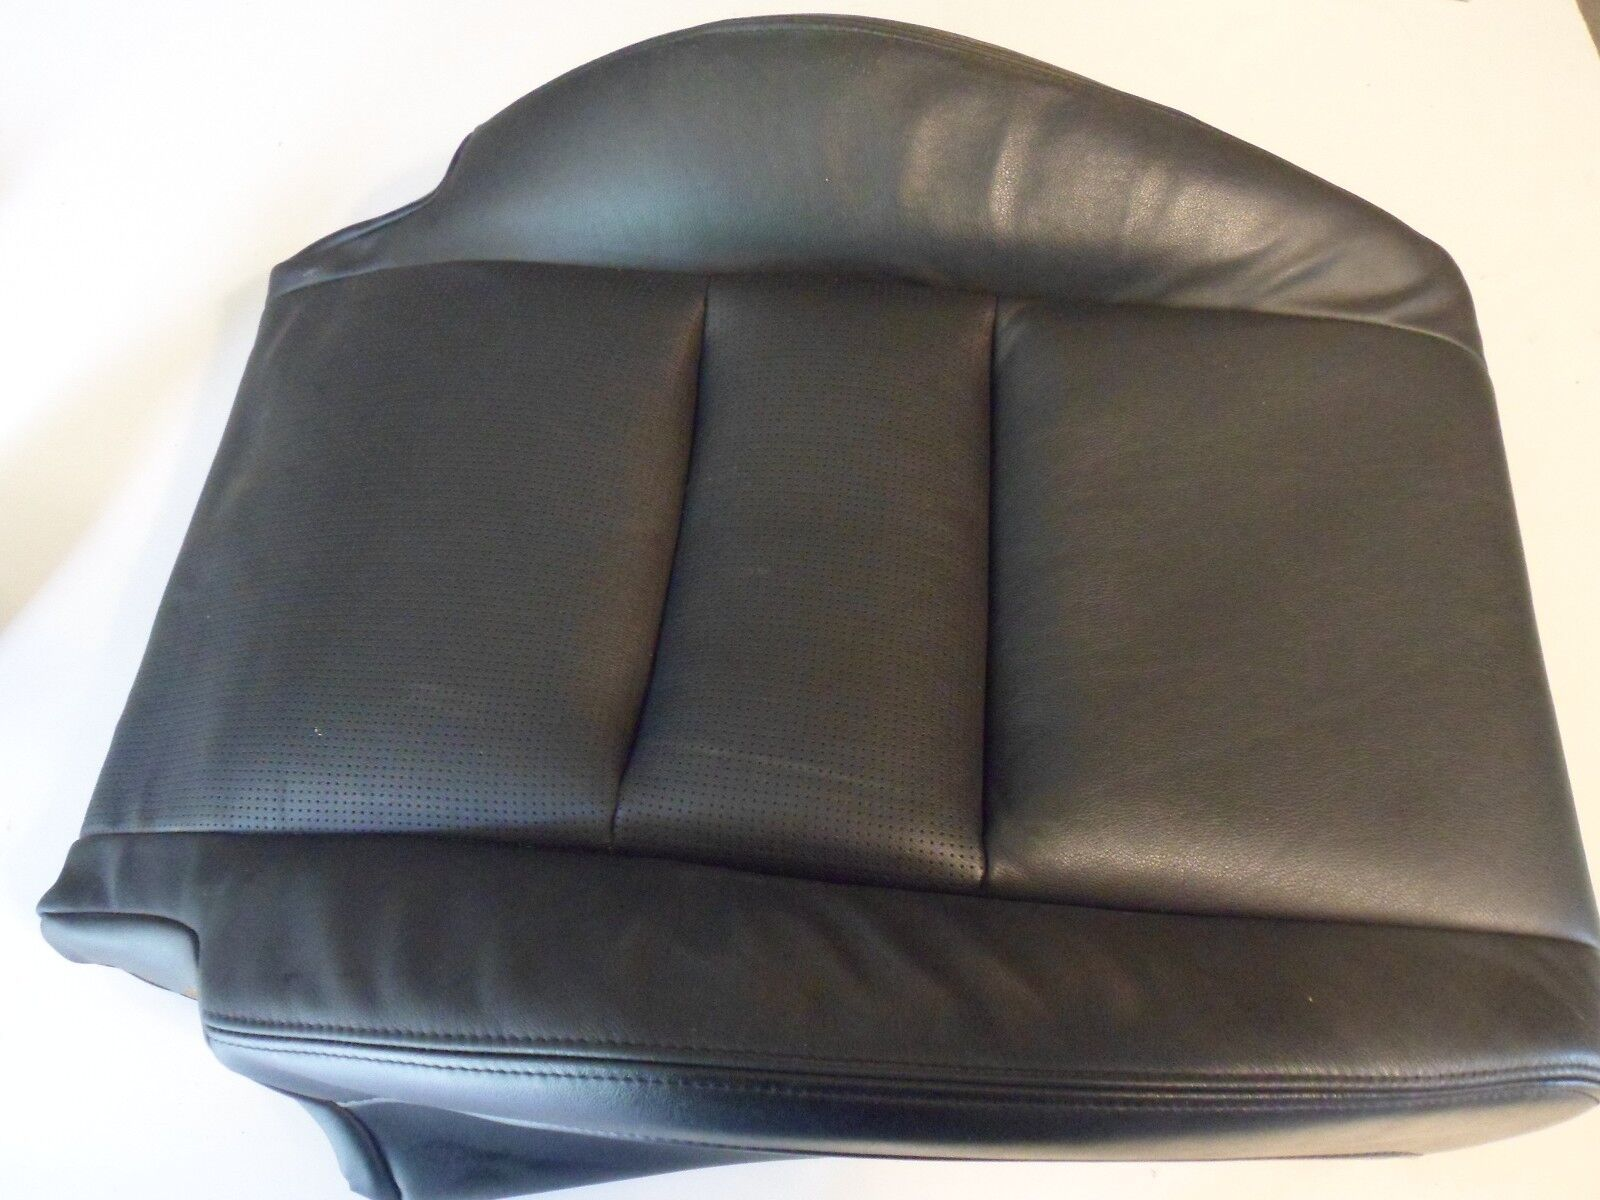 Used nissan maxima seats for sale page 2 2004 2004 2005 nissan maxima se right passenger front seat back assembly cushion vanachro Images